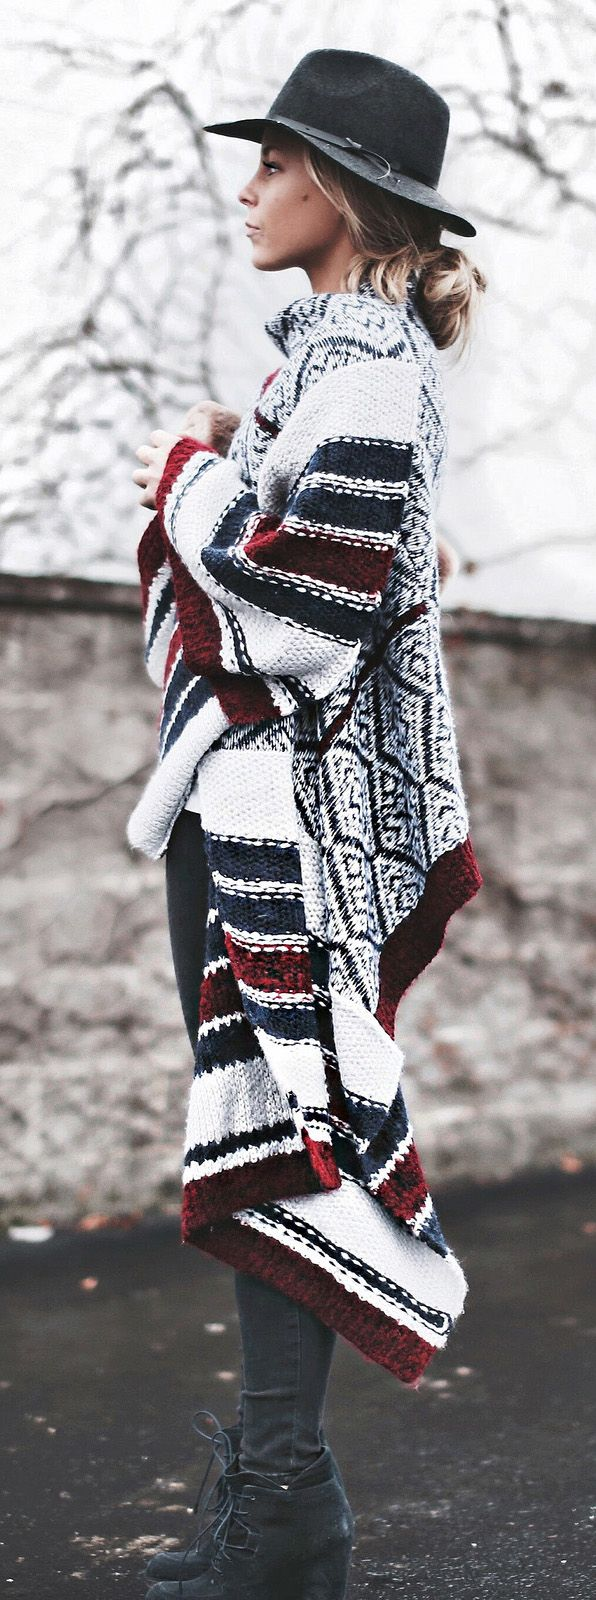 Street Style January 2015: Mary Seng is wearing a multi pattern cardigan from Anthropologie